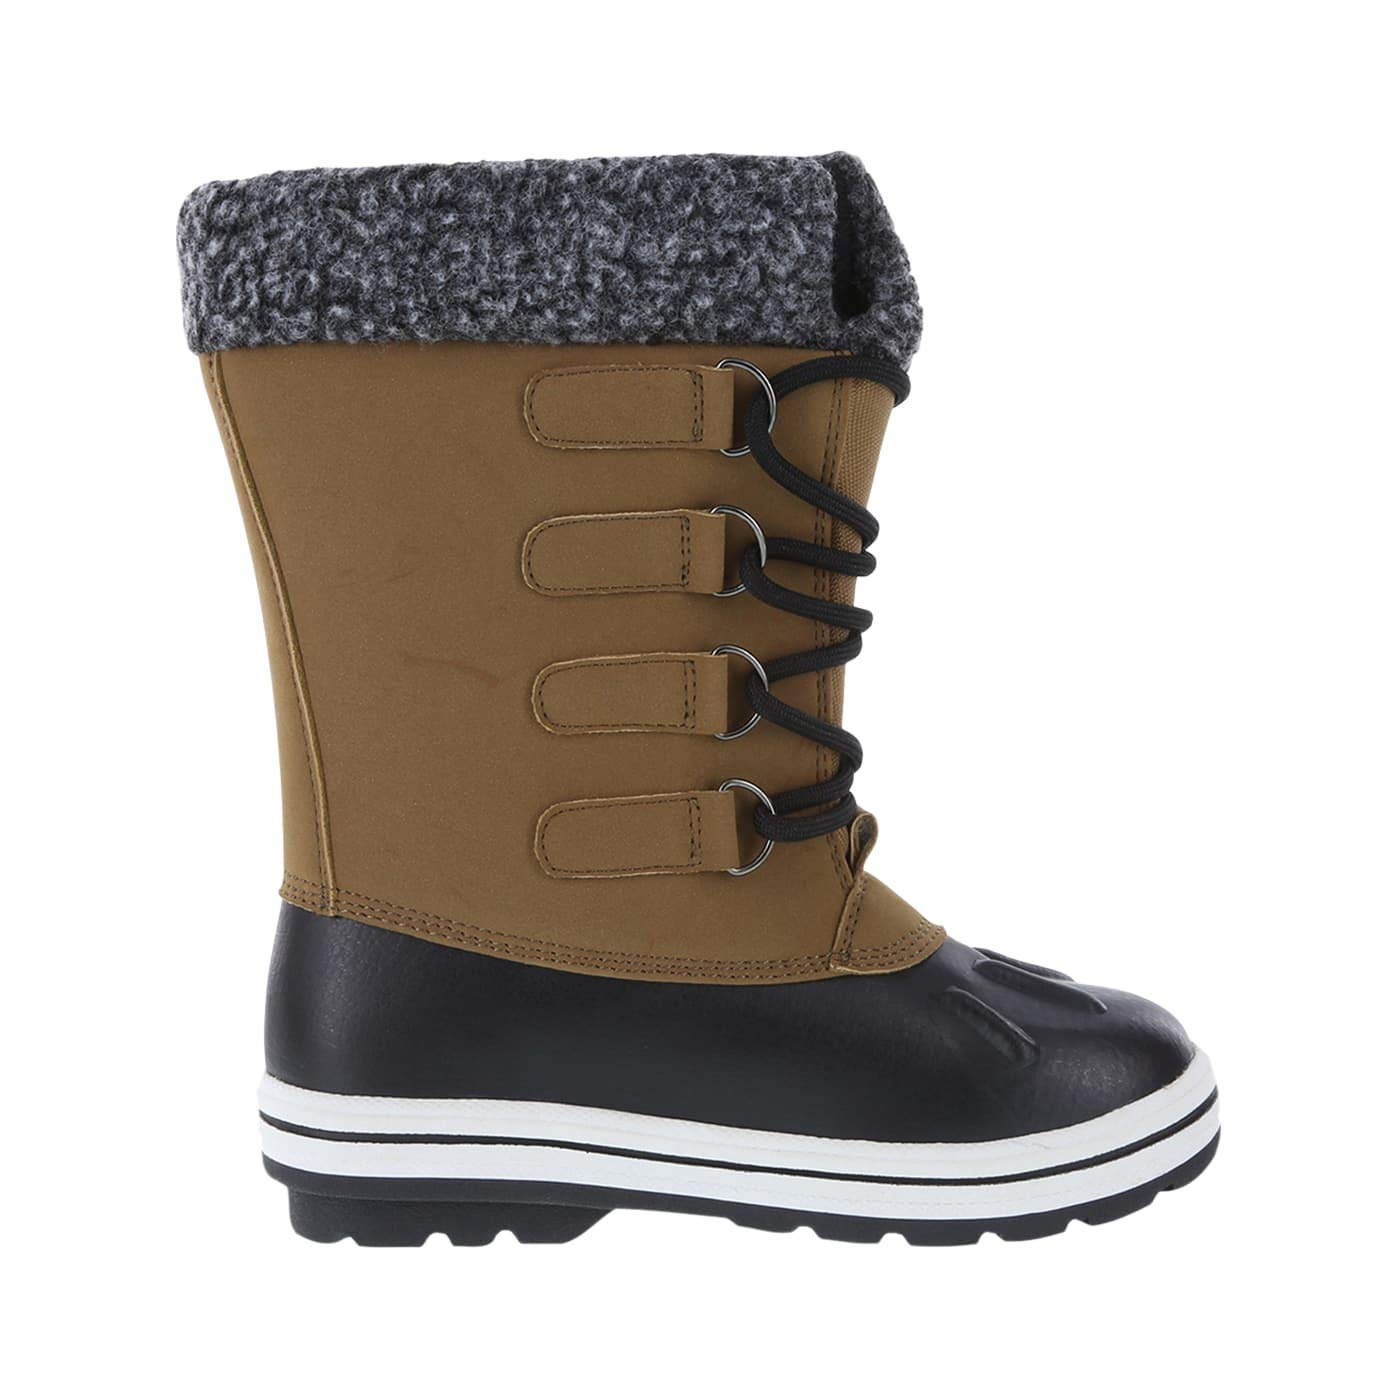 Rugged Outback Boys Glacier 10 Weather Boot